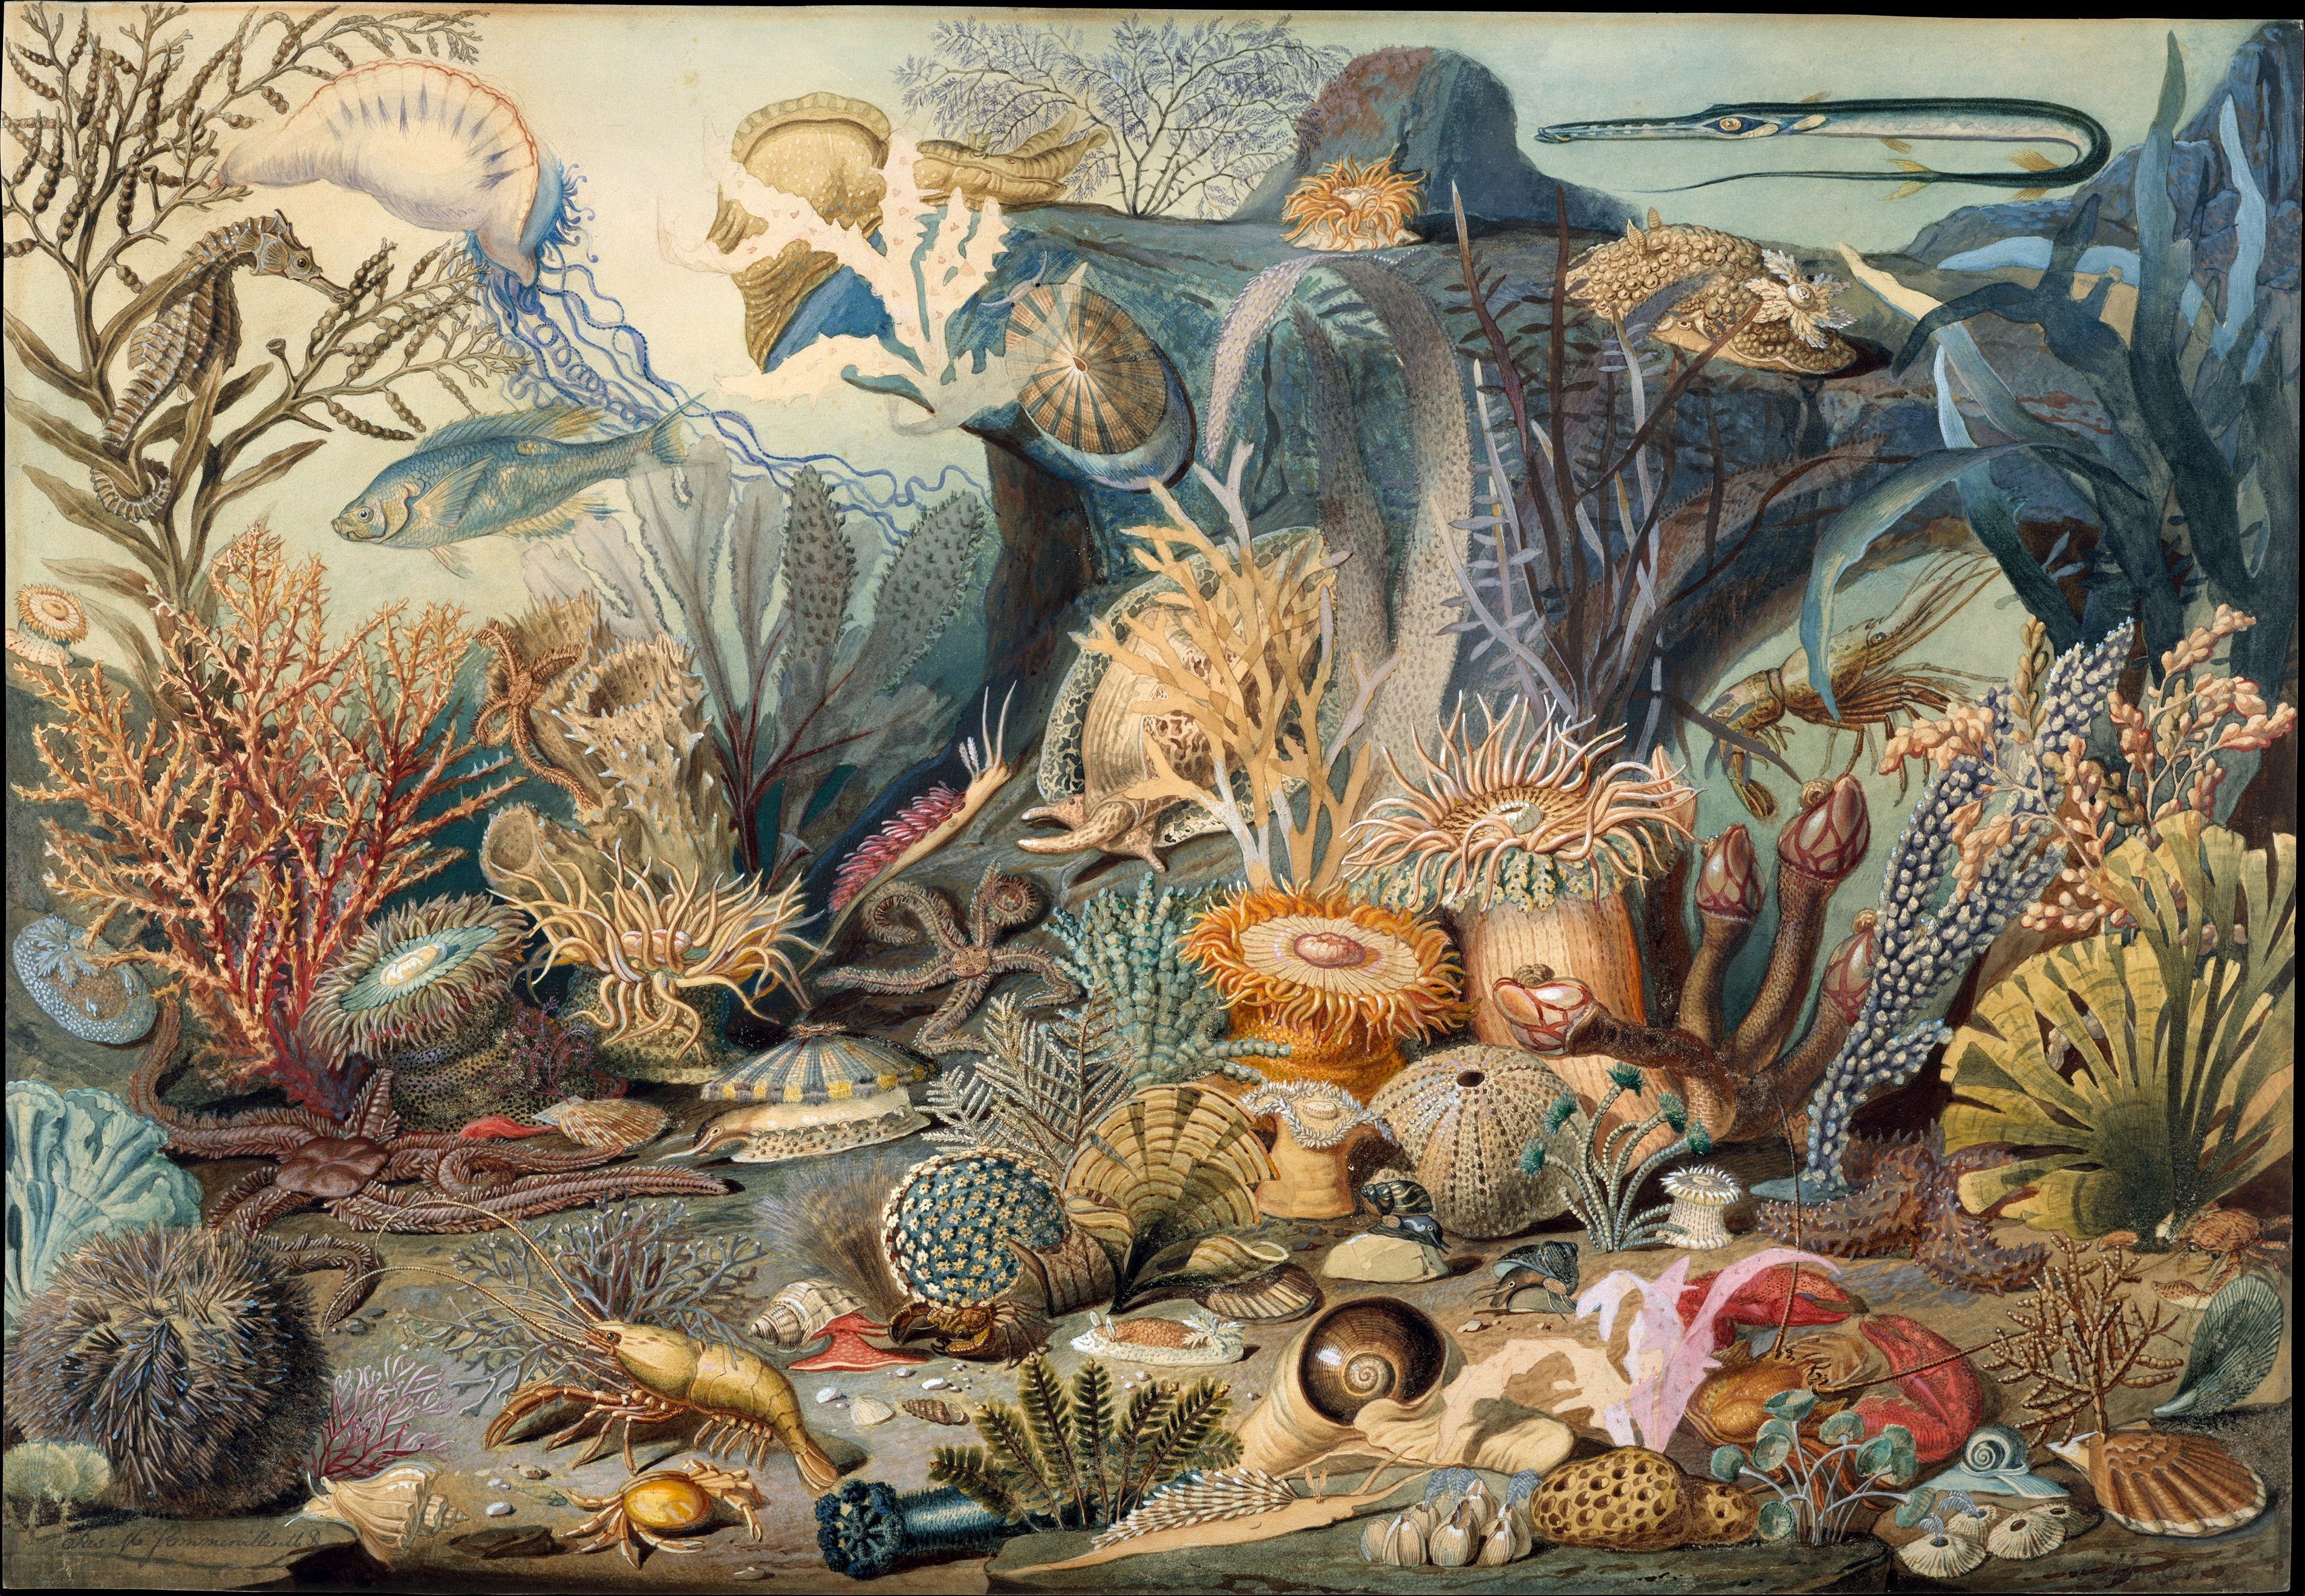 19th century natural history illustration of ocean life